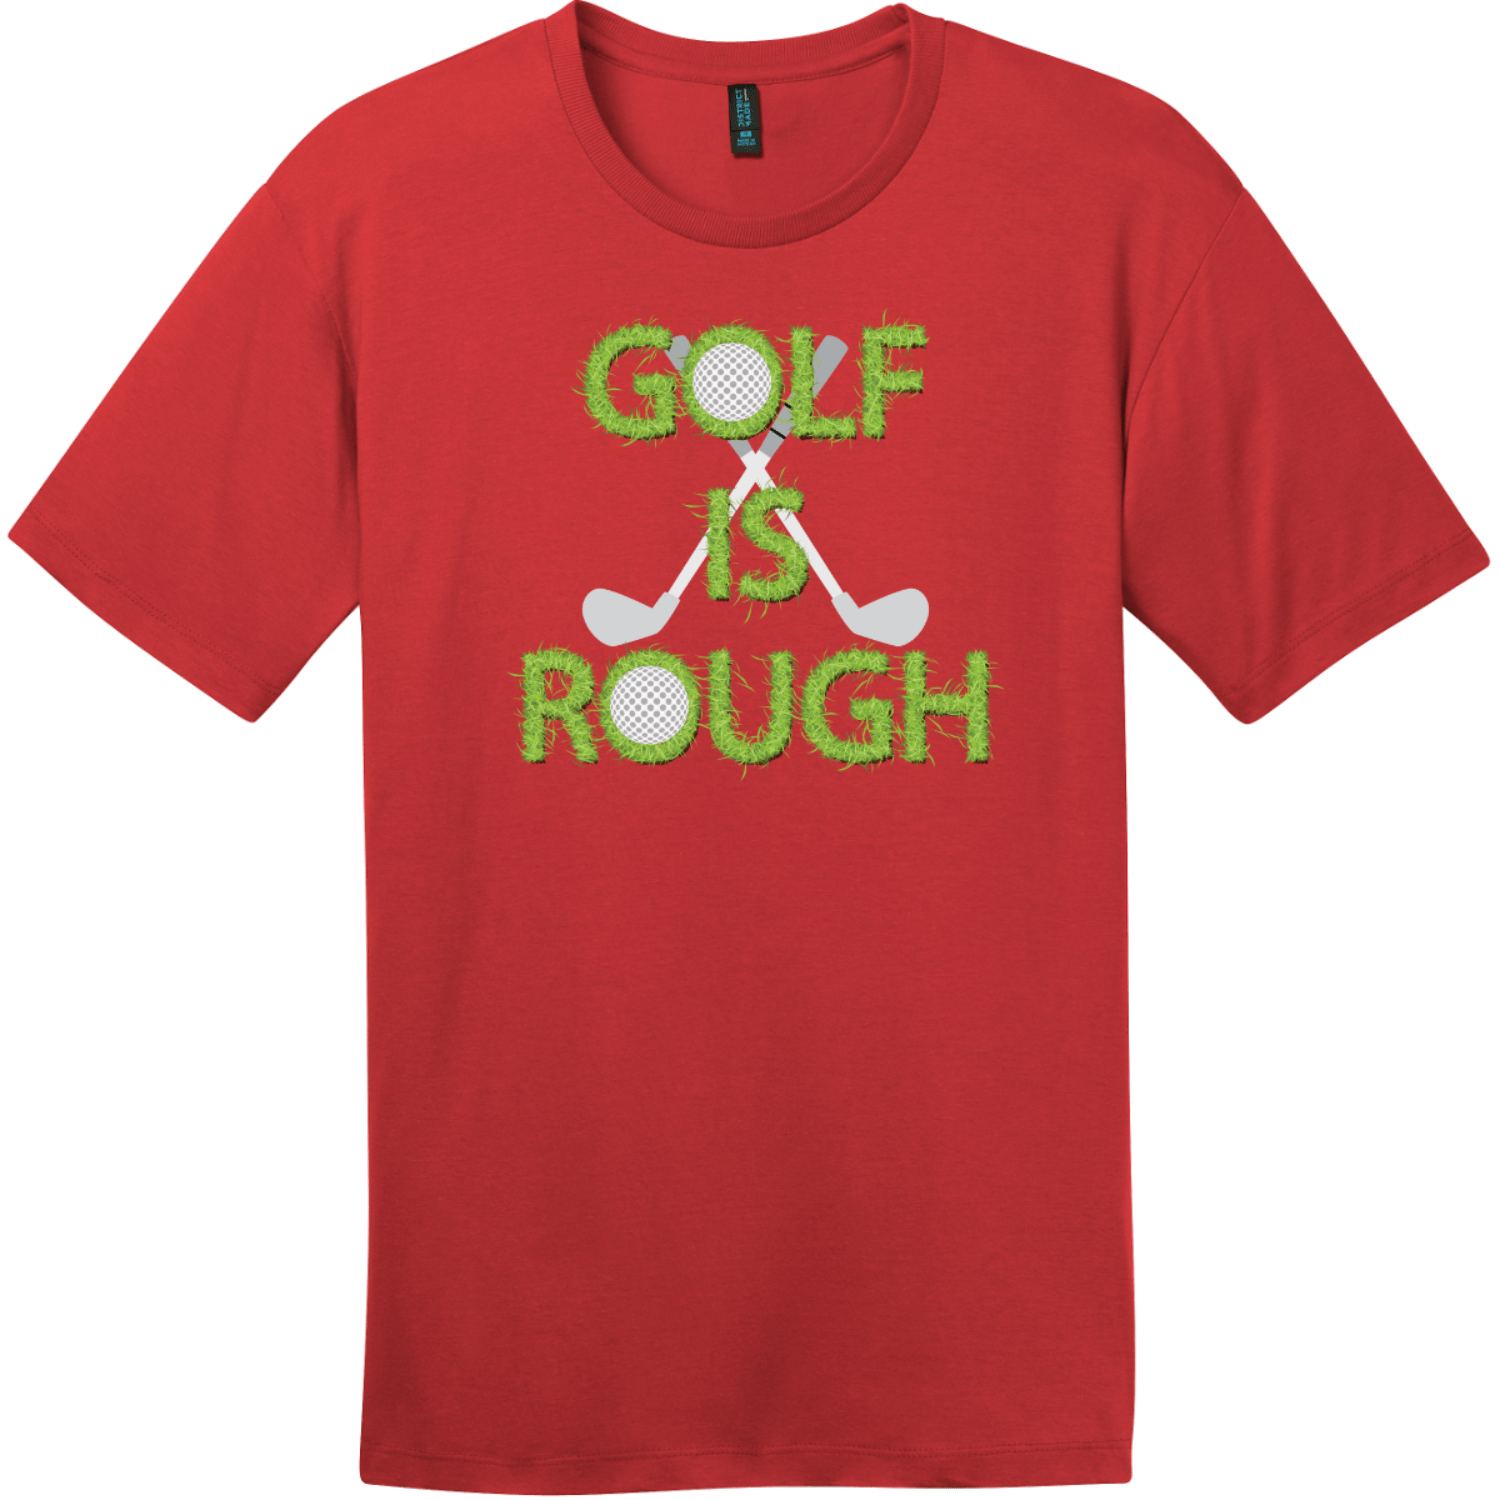 Golf Is Rough Funny Golf T-Shirt Classic Red District Perfect Weight Tee DT104